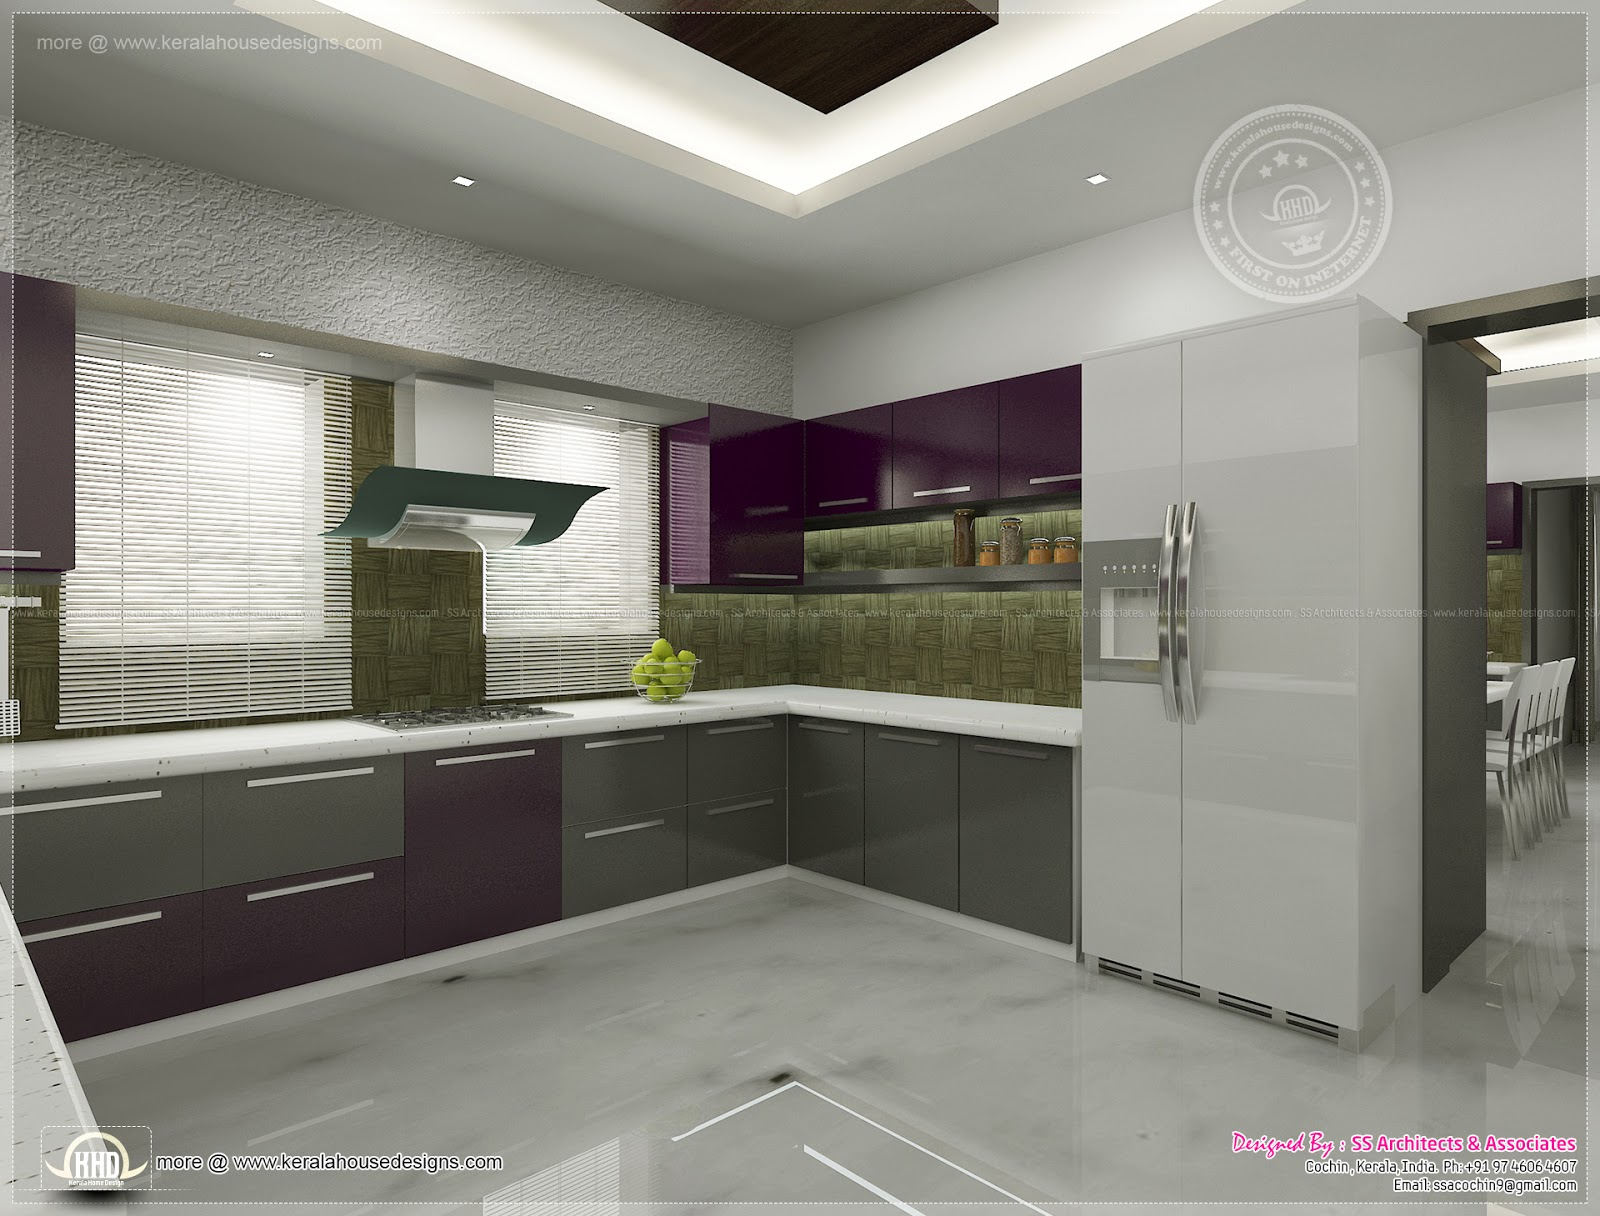 Kitchen interior views by ss architects cochin home - Home interior design kitchen pictures ...